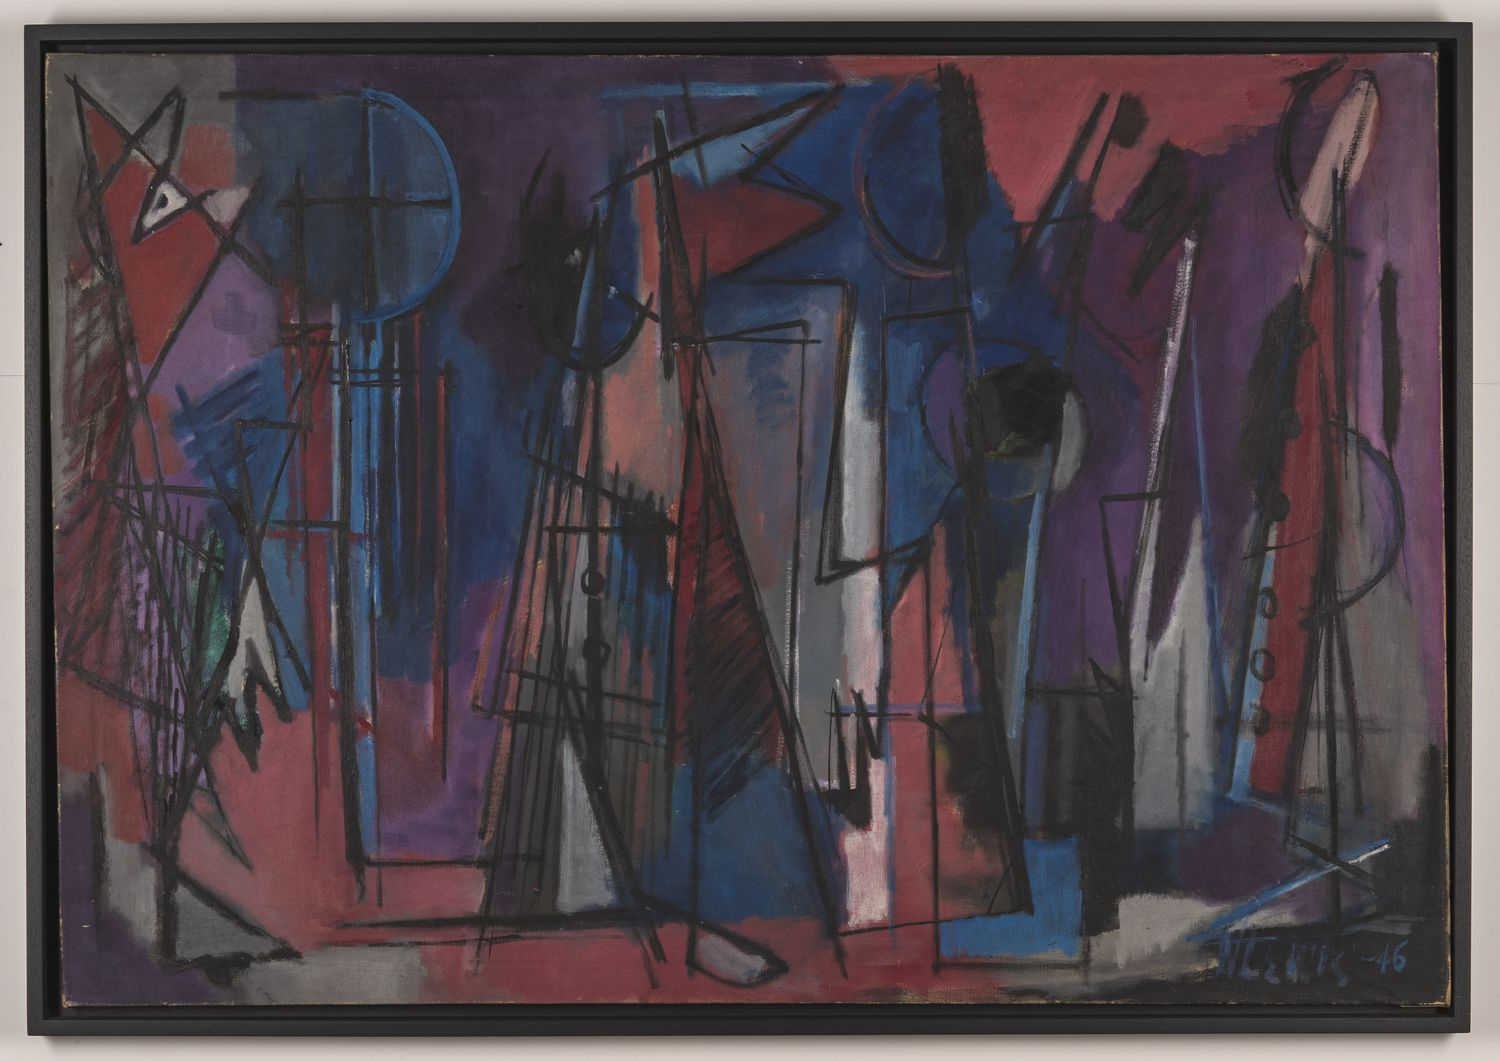 Norman Lewis - Untitled (Composition)